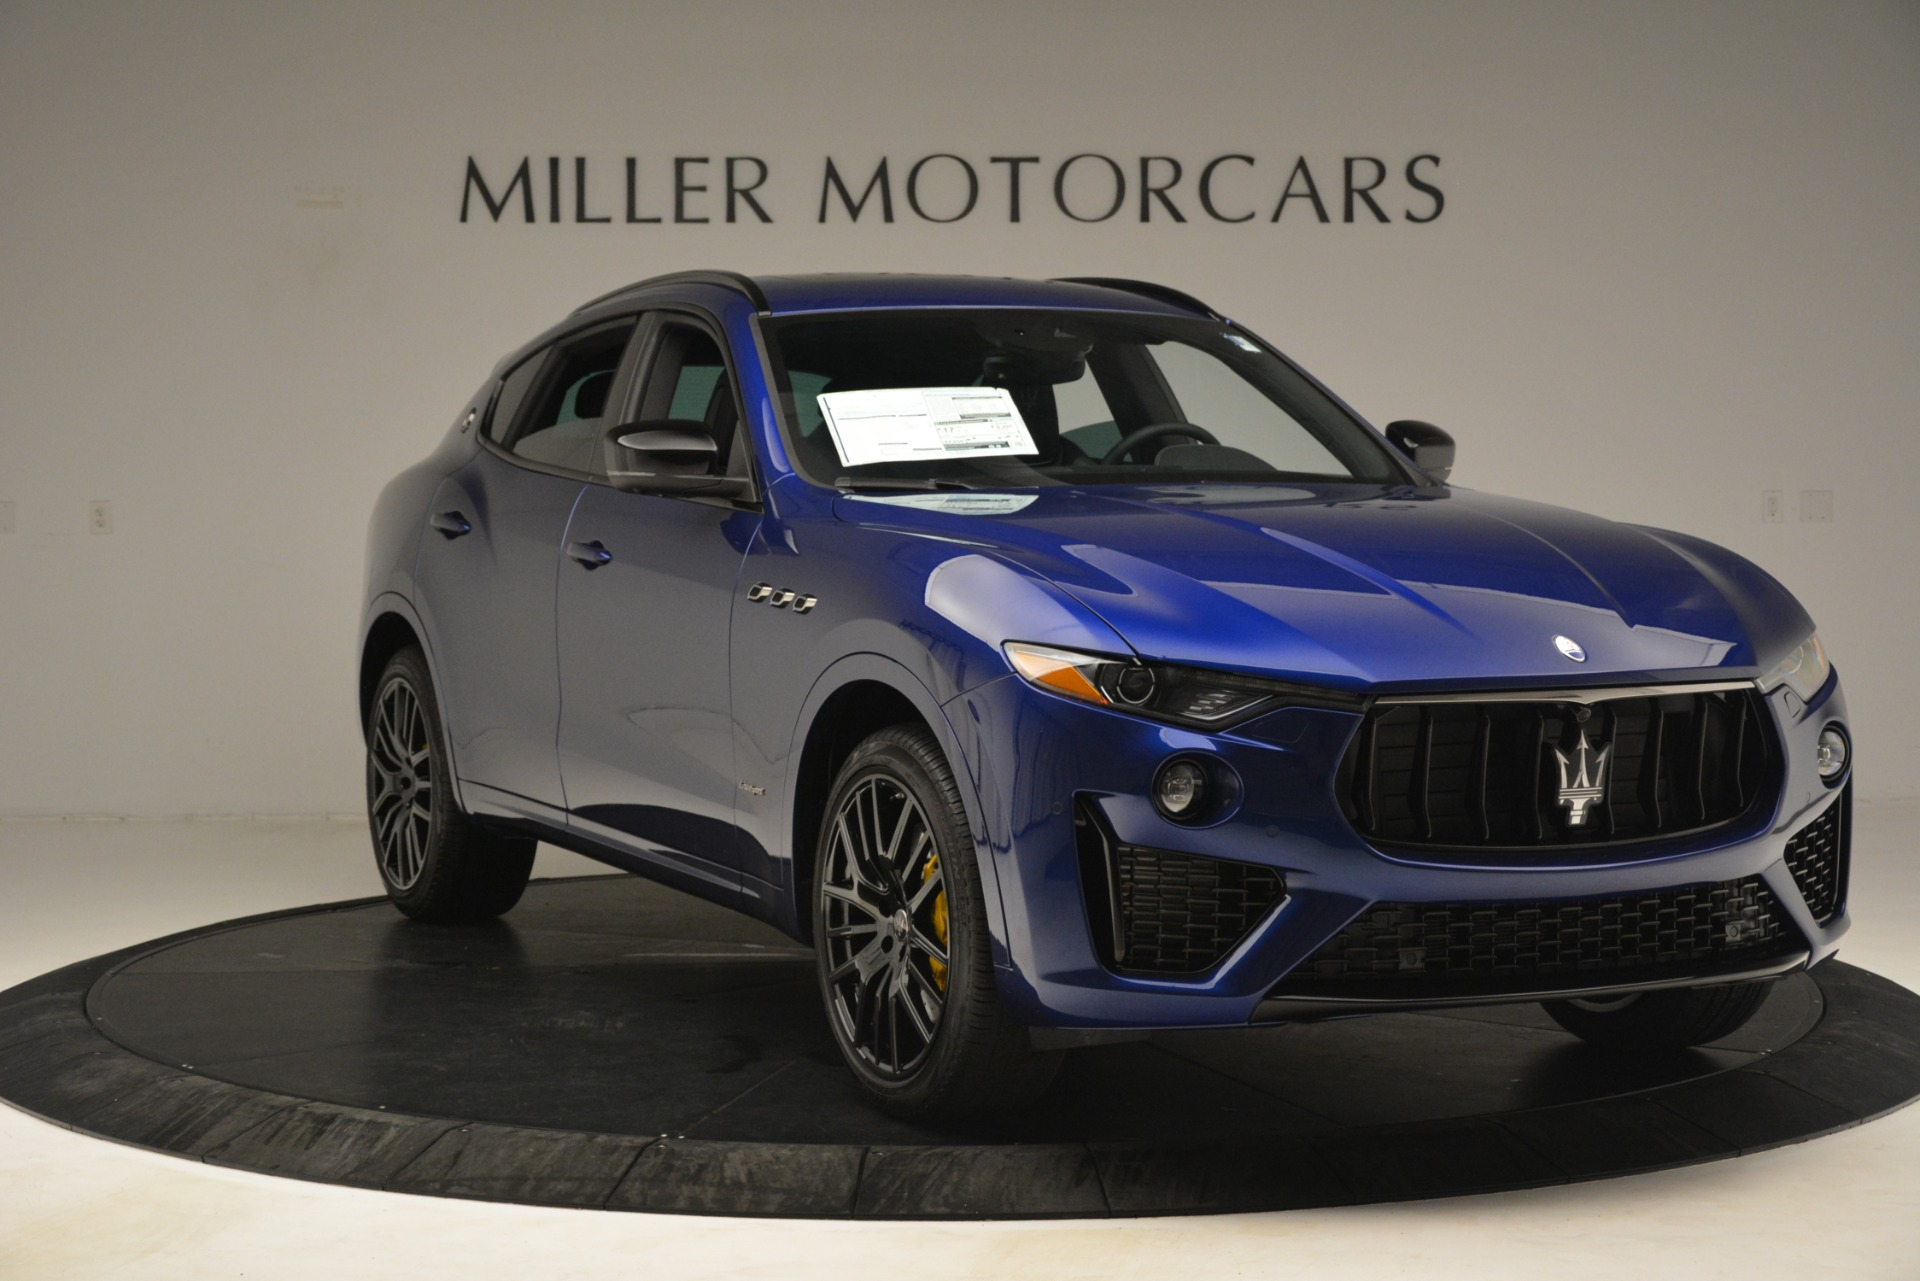 New 2019 Maserati Levante SQ4 GranSport Nerissimo For Sale In Westport, CT 3179_p11